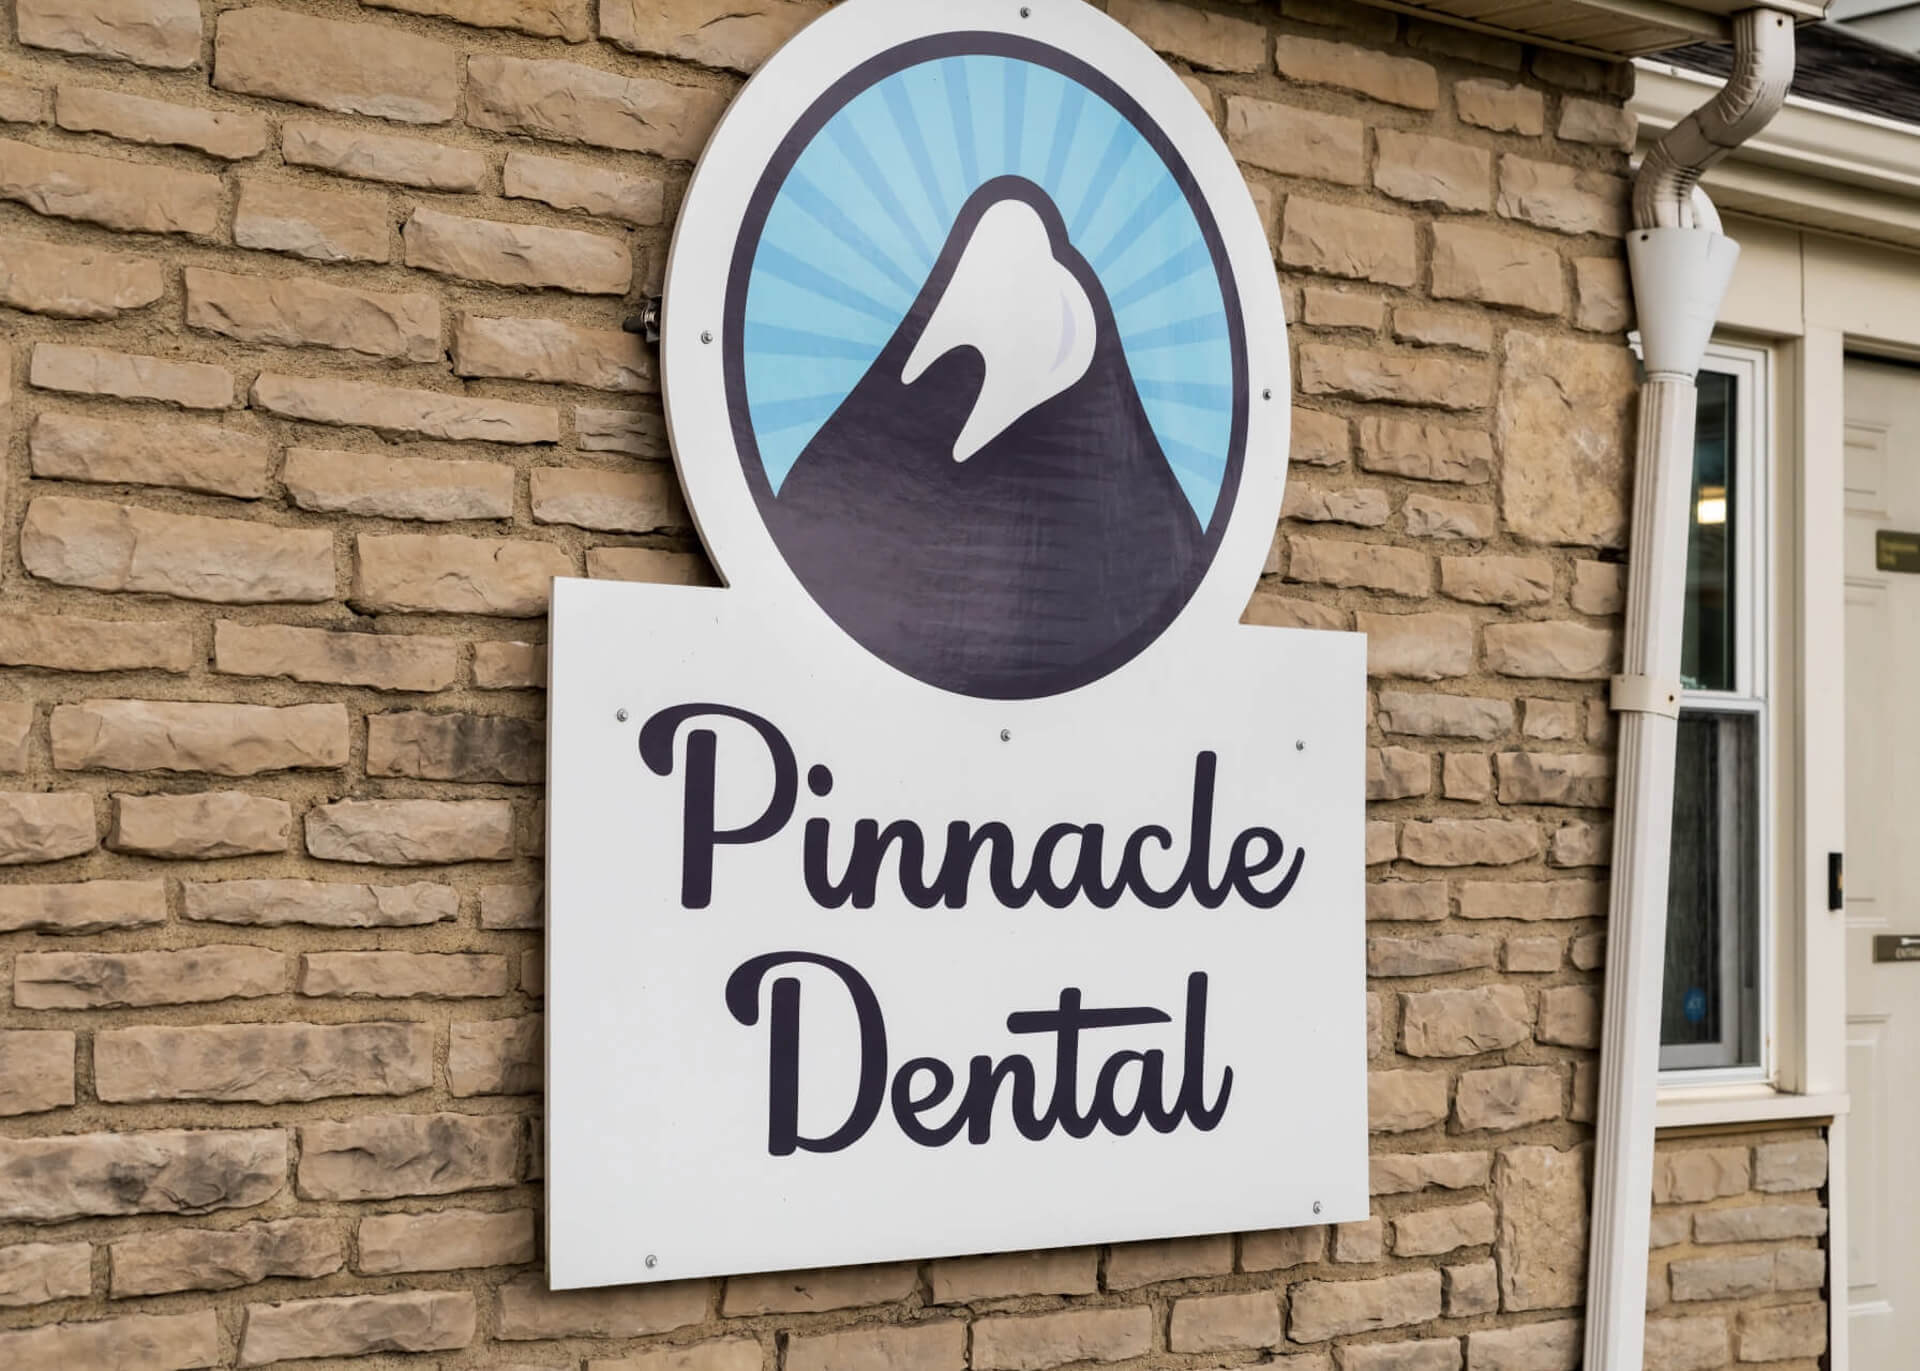 Look for the Pinnacle Dental sign at our building in Grove City